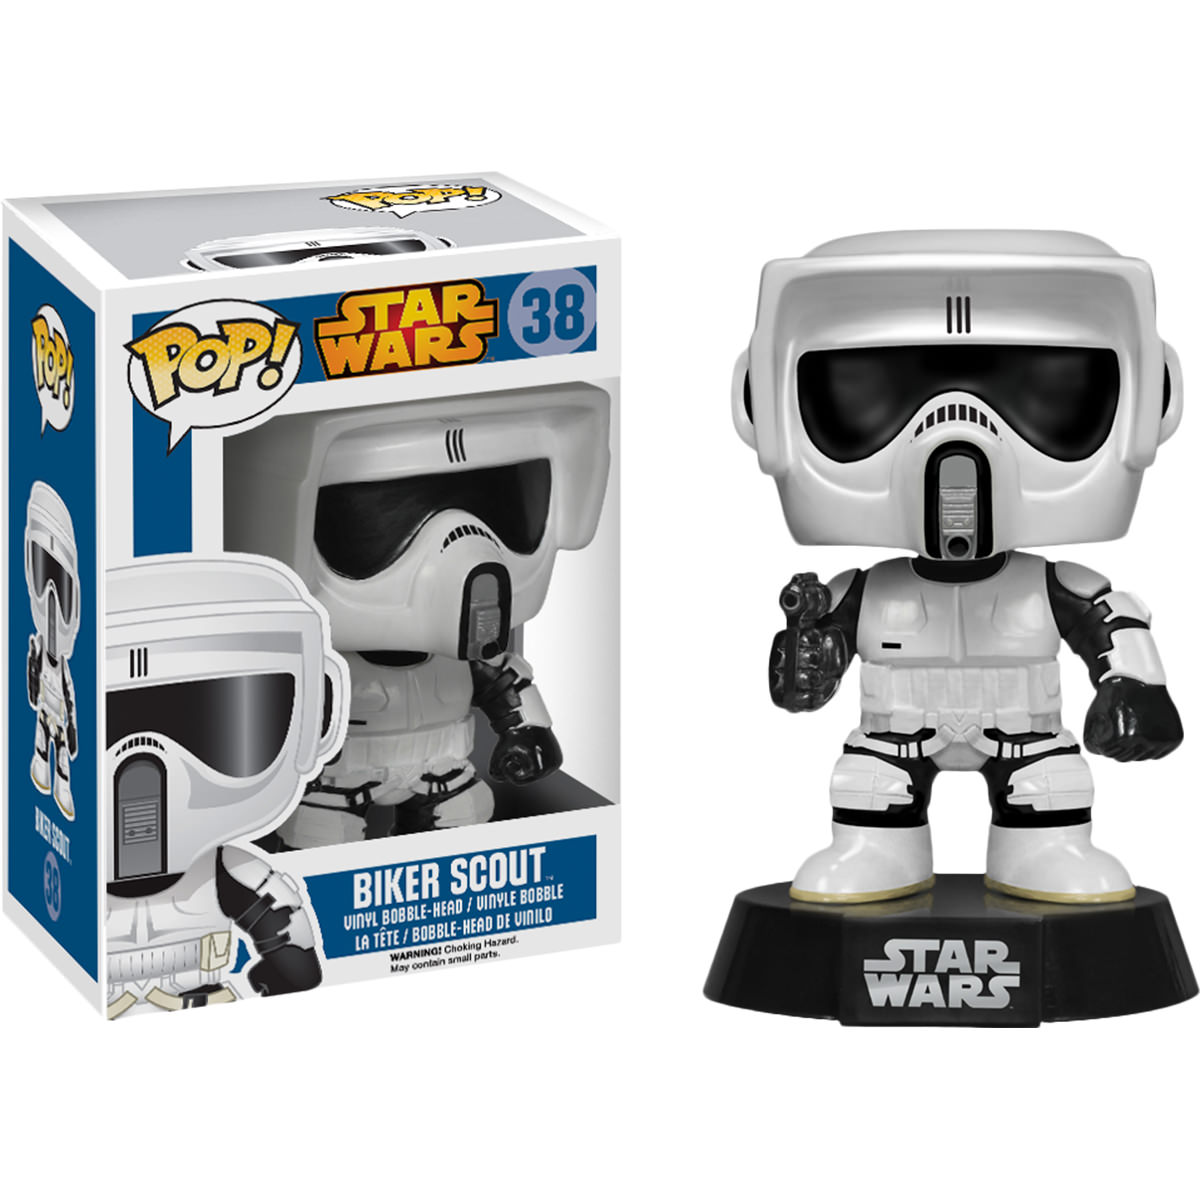 funko star wars biker scout pop vinyl figure at hobby warehouse. Black Bedroom Furniture Sets. Home Design Ideas